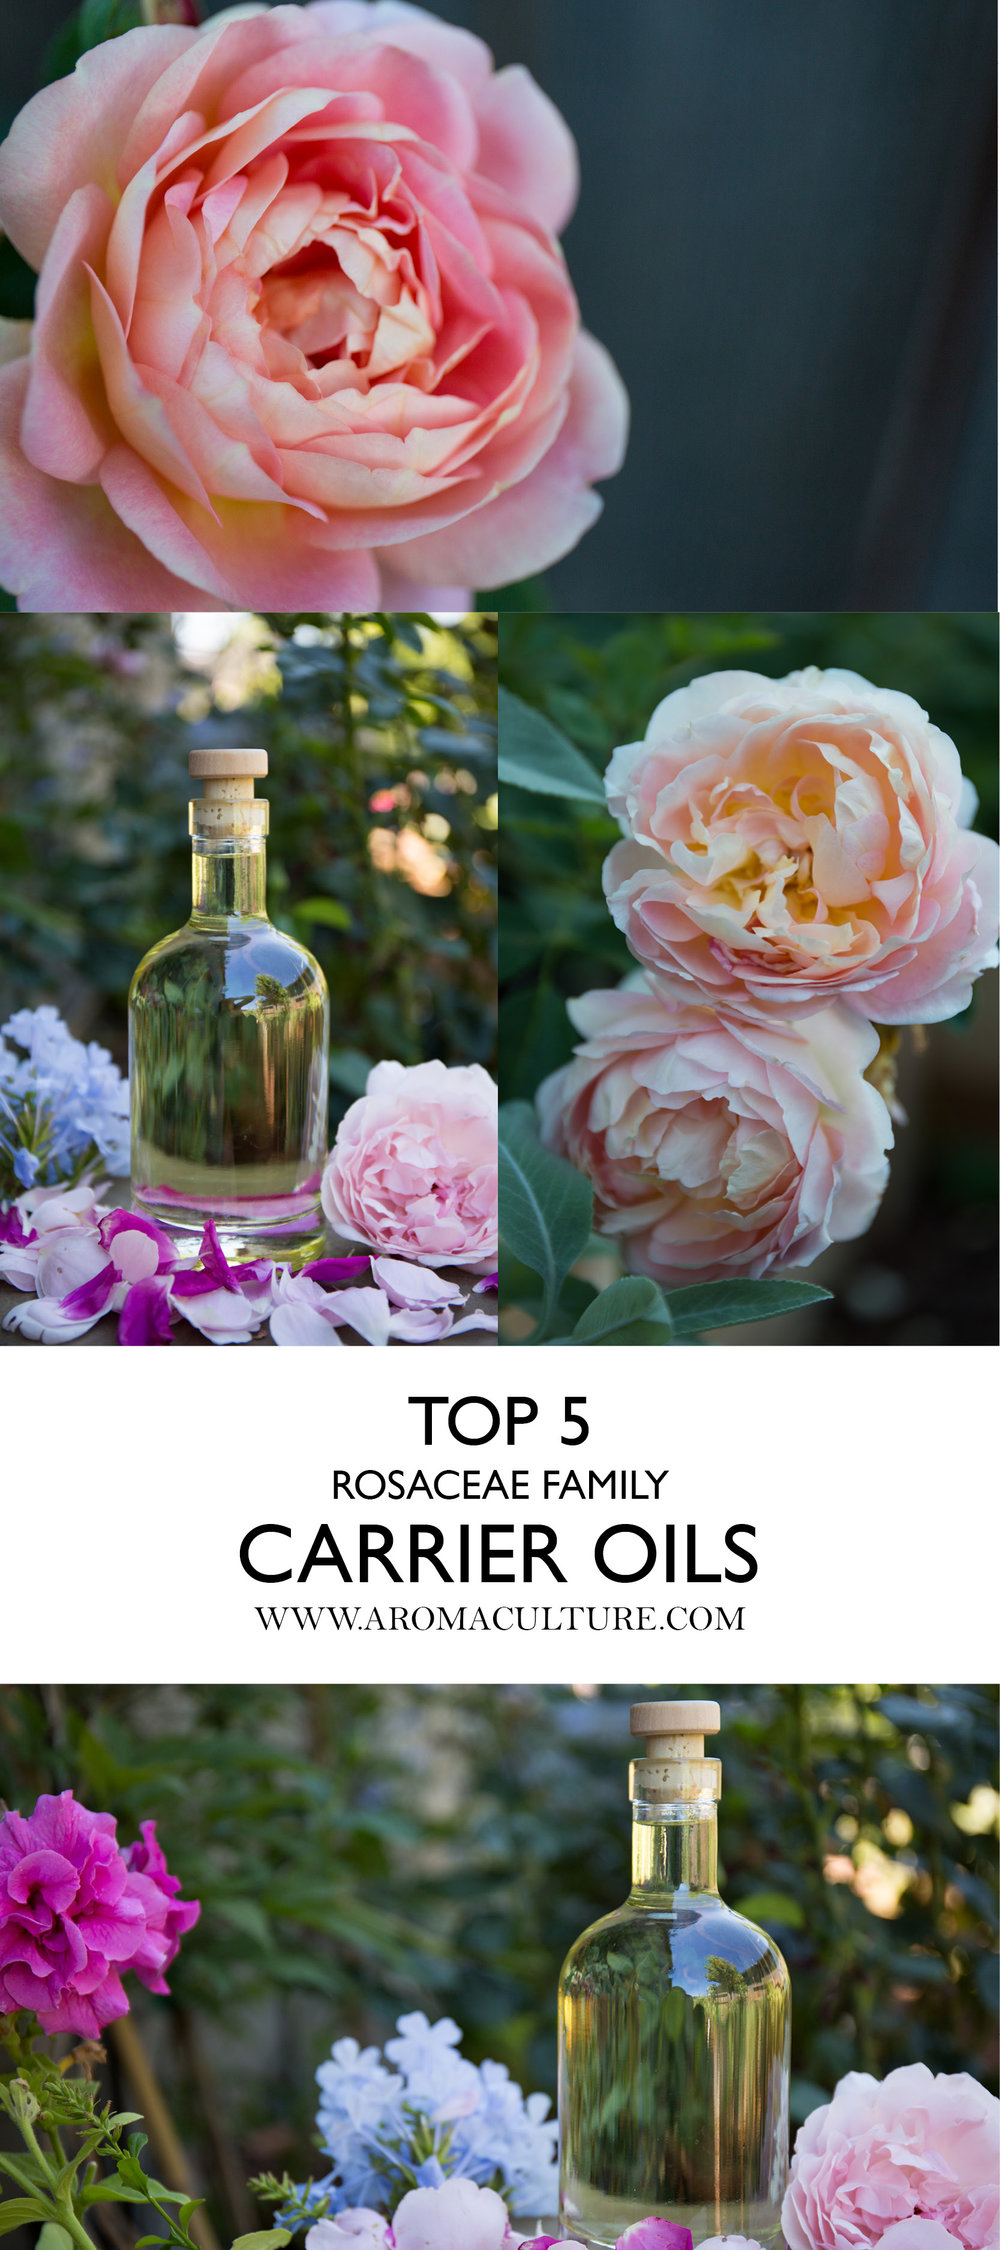 TOP 5 ROSACEAE CARRIER OILS AROMACULTURE.jpg